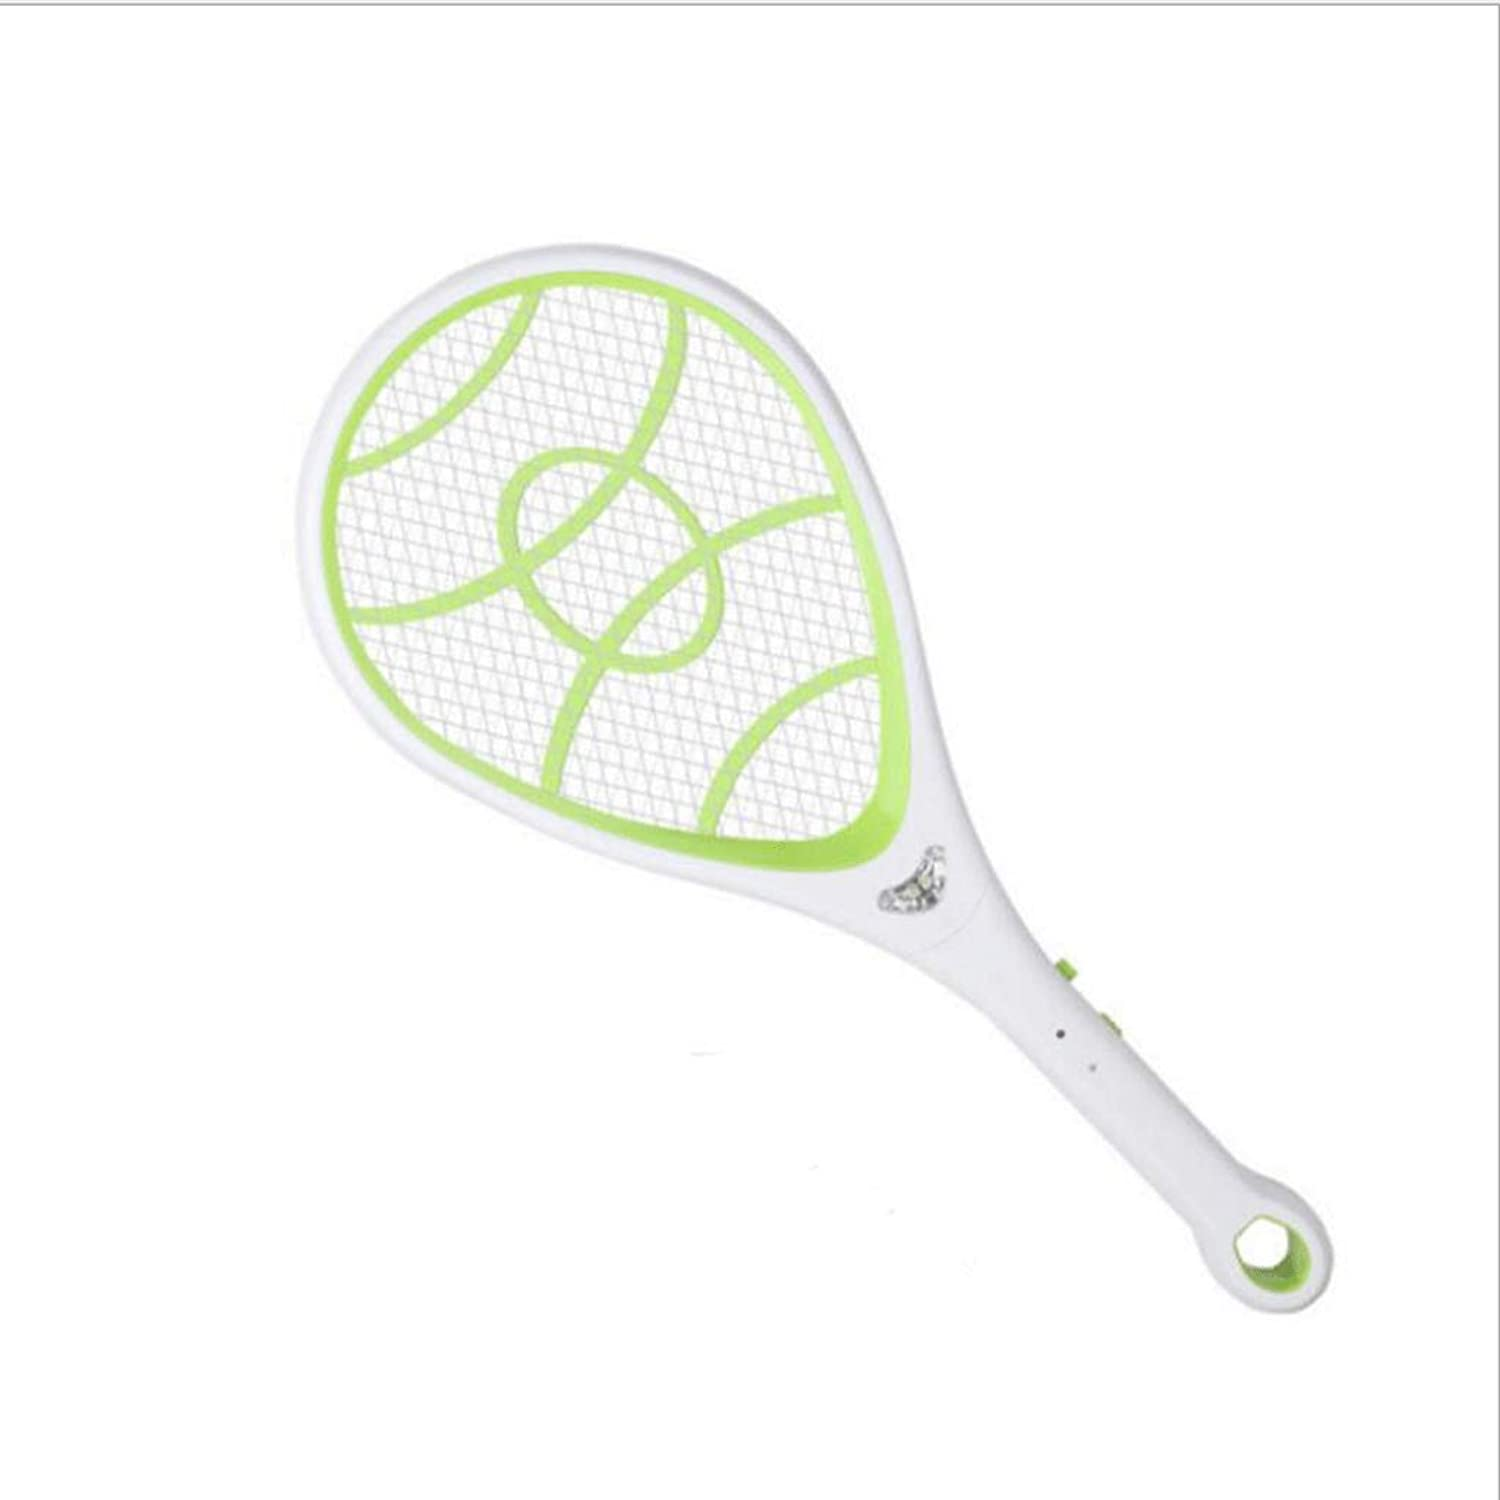 ABS High Power USB Rechargeable Electric Mosquito Swatter Home Three Network Fly Swatter